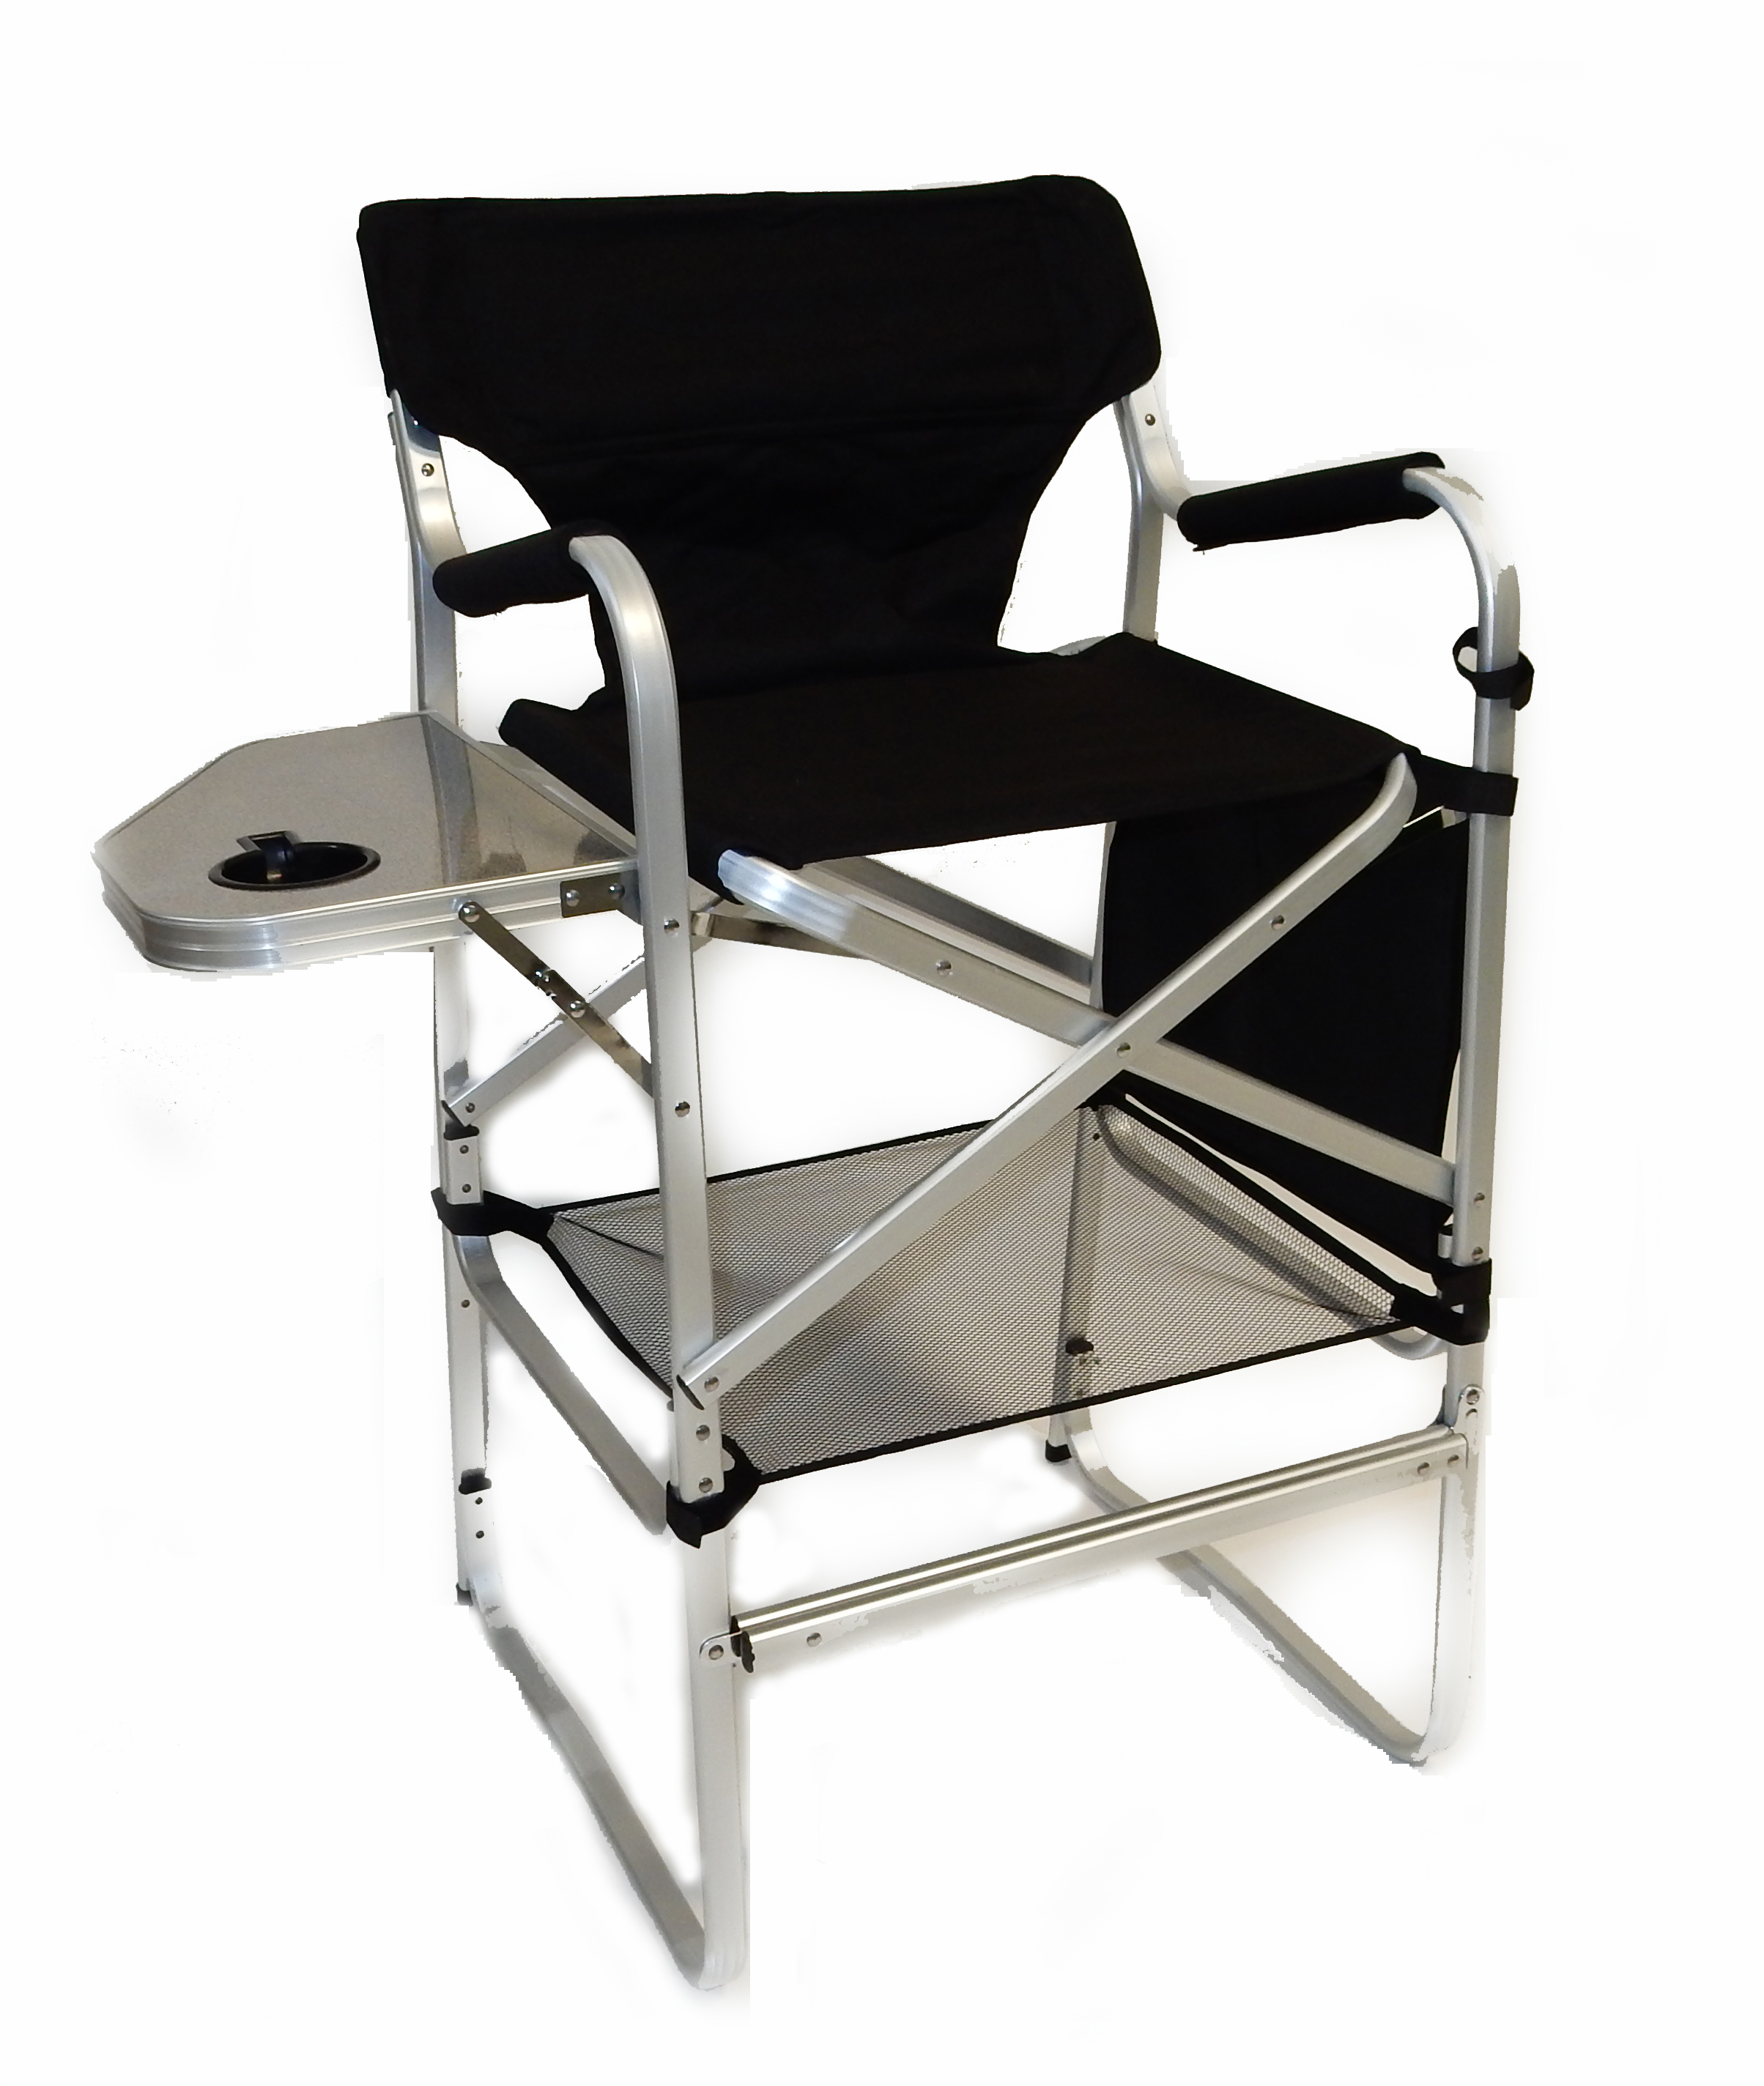 Folding Director Chair Deluxe Tall Director Chair W Side Table And Cup Holder